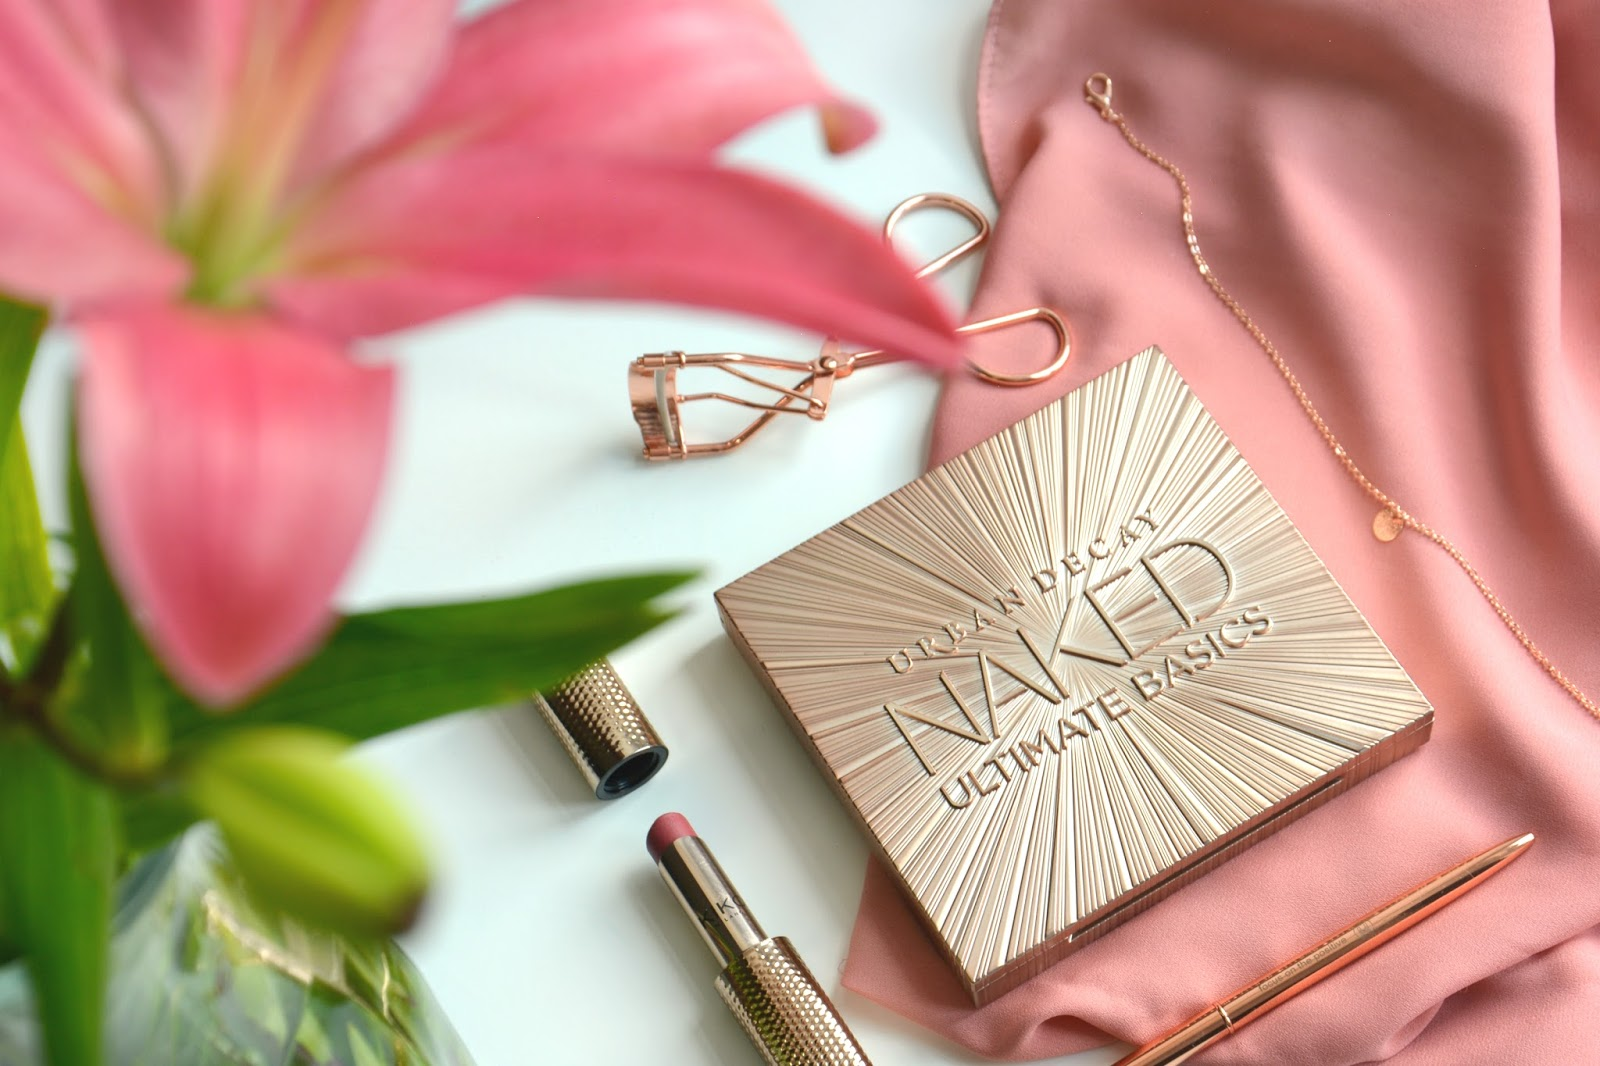 Urban Decay Naked Ultimate Basics Eyeshadow Palette; Kiko Lipstick; Happy Planners Pen;  Primark Necklace; Primark Rosegold Eyelash Curler; Fresh lilies